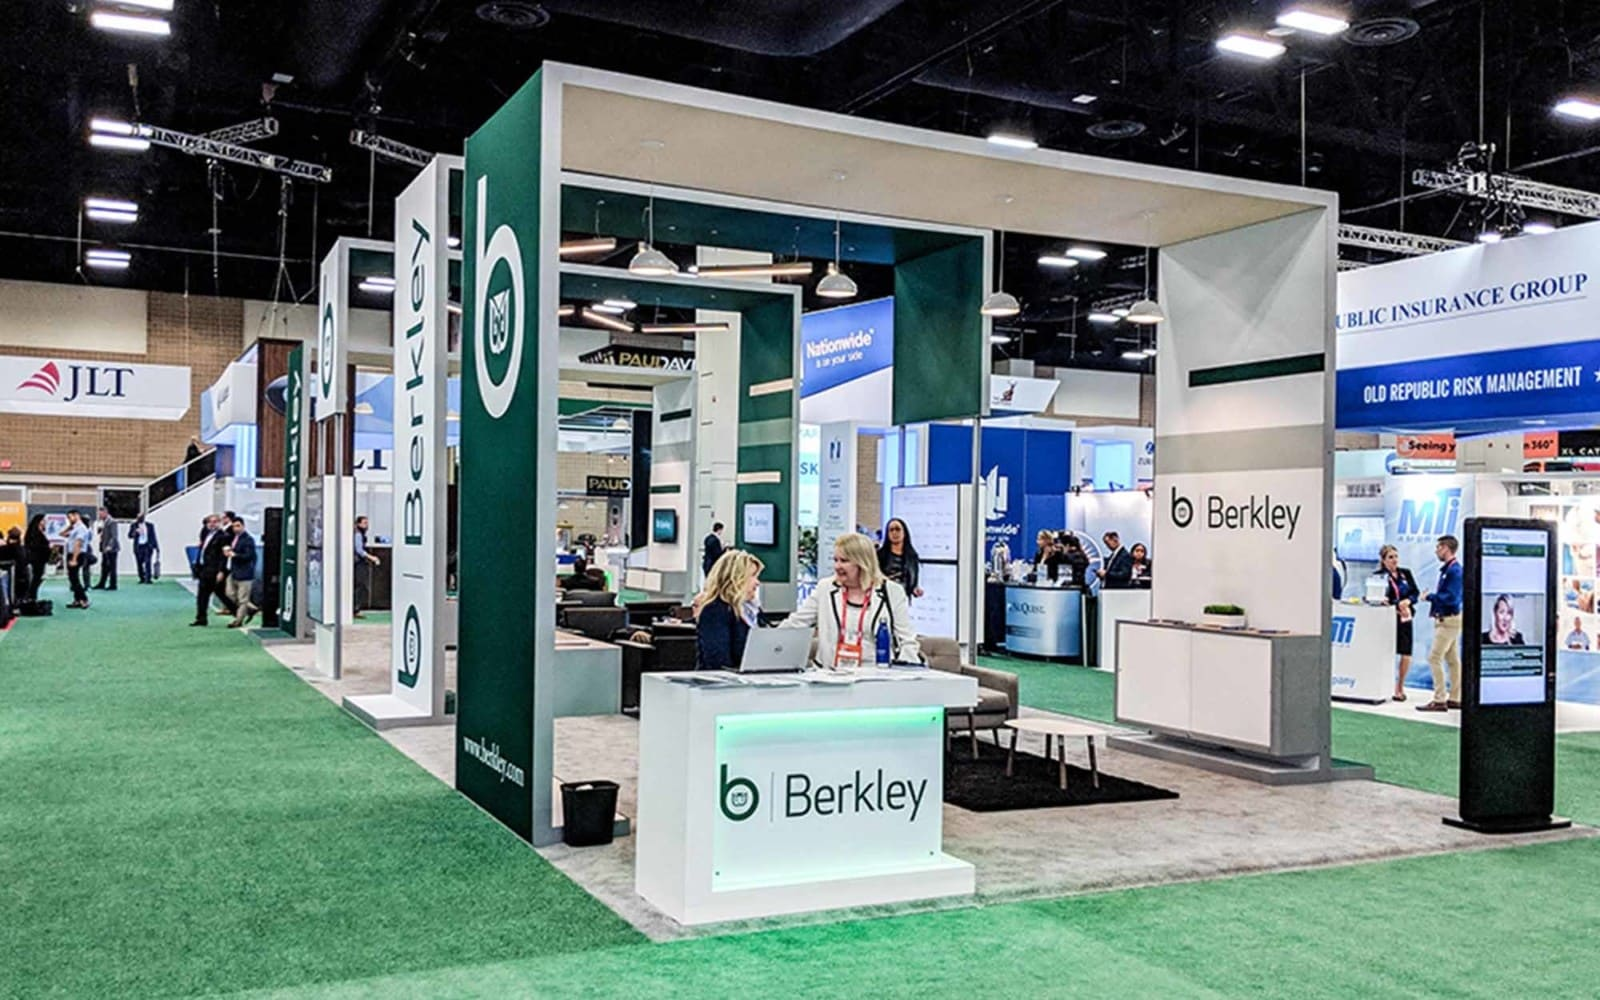 green booth with meeting area under arches for berkley